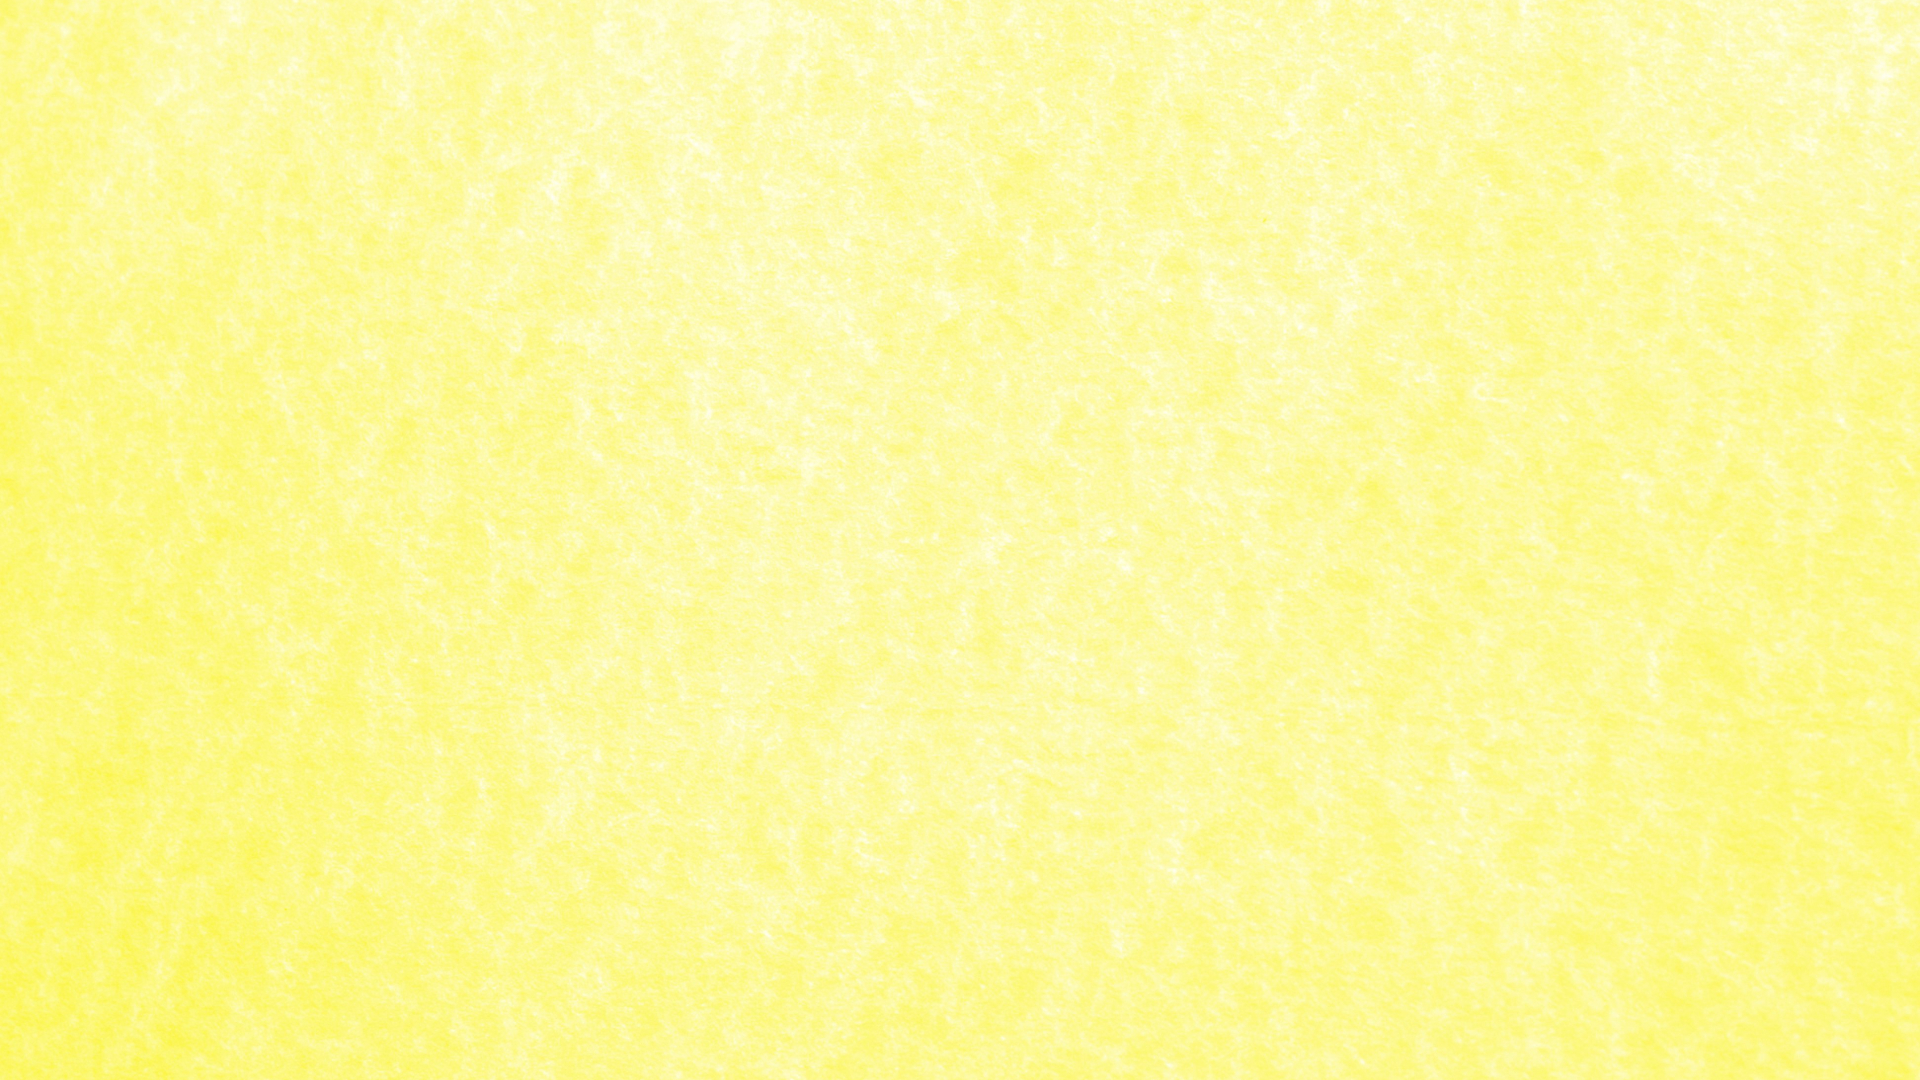 yellow wallpaper fiction essay character analysis essay: the yellow wallpaper the yellow wallpaper by charlotte perkins gilman is a first-person narration in a journal account of a depressed woman sent to a colonial mansion for the summer in her husband's attempts to help her get well, but this is only her version.